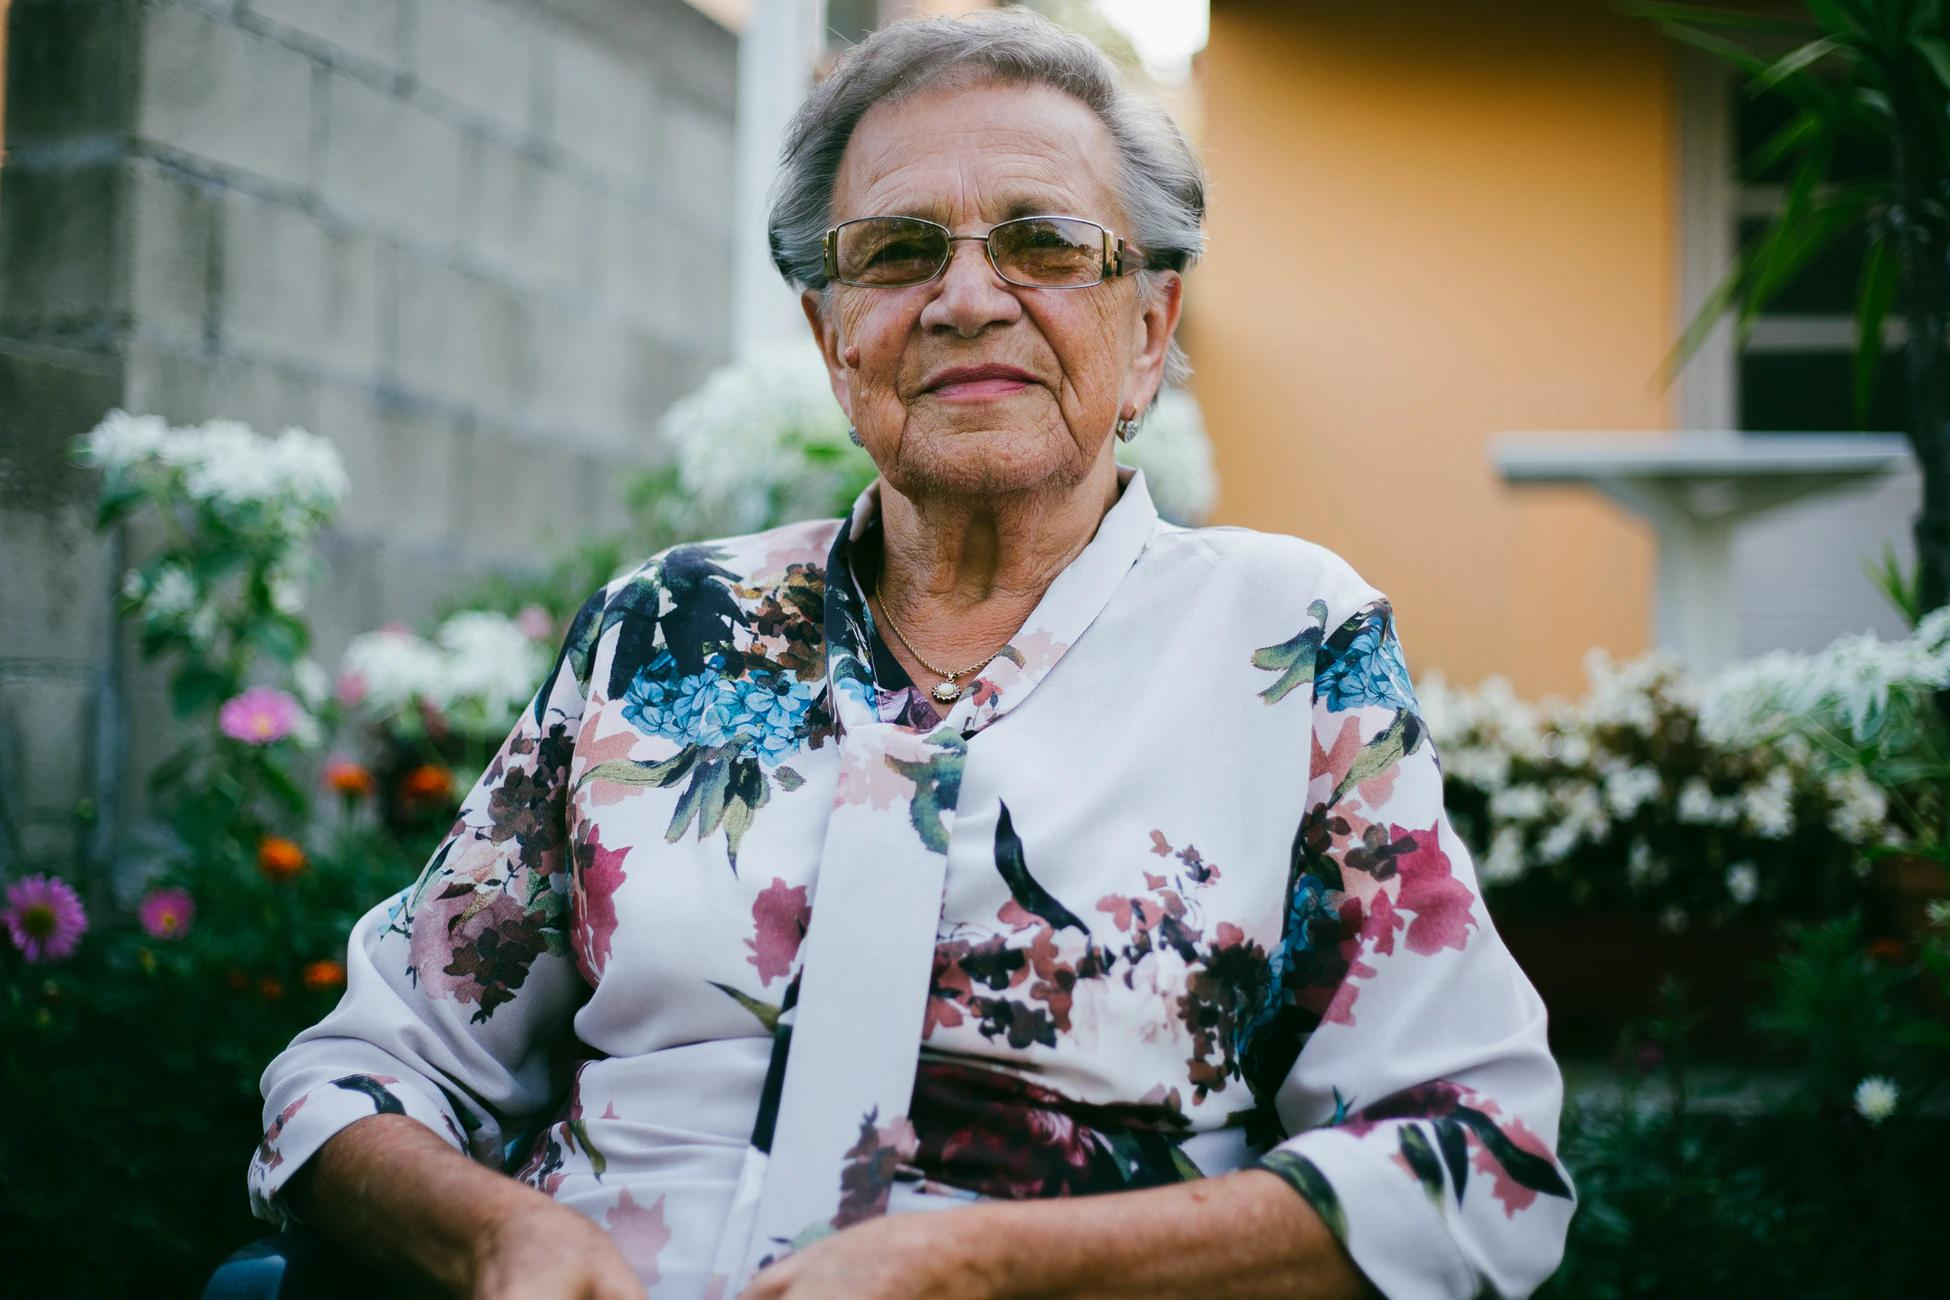 5 Ways to Prepare for an Elderly Loved One Moving In